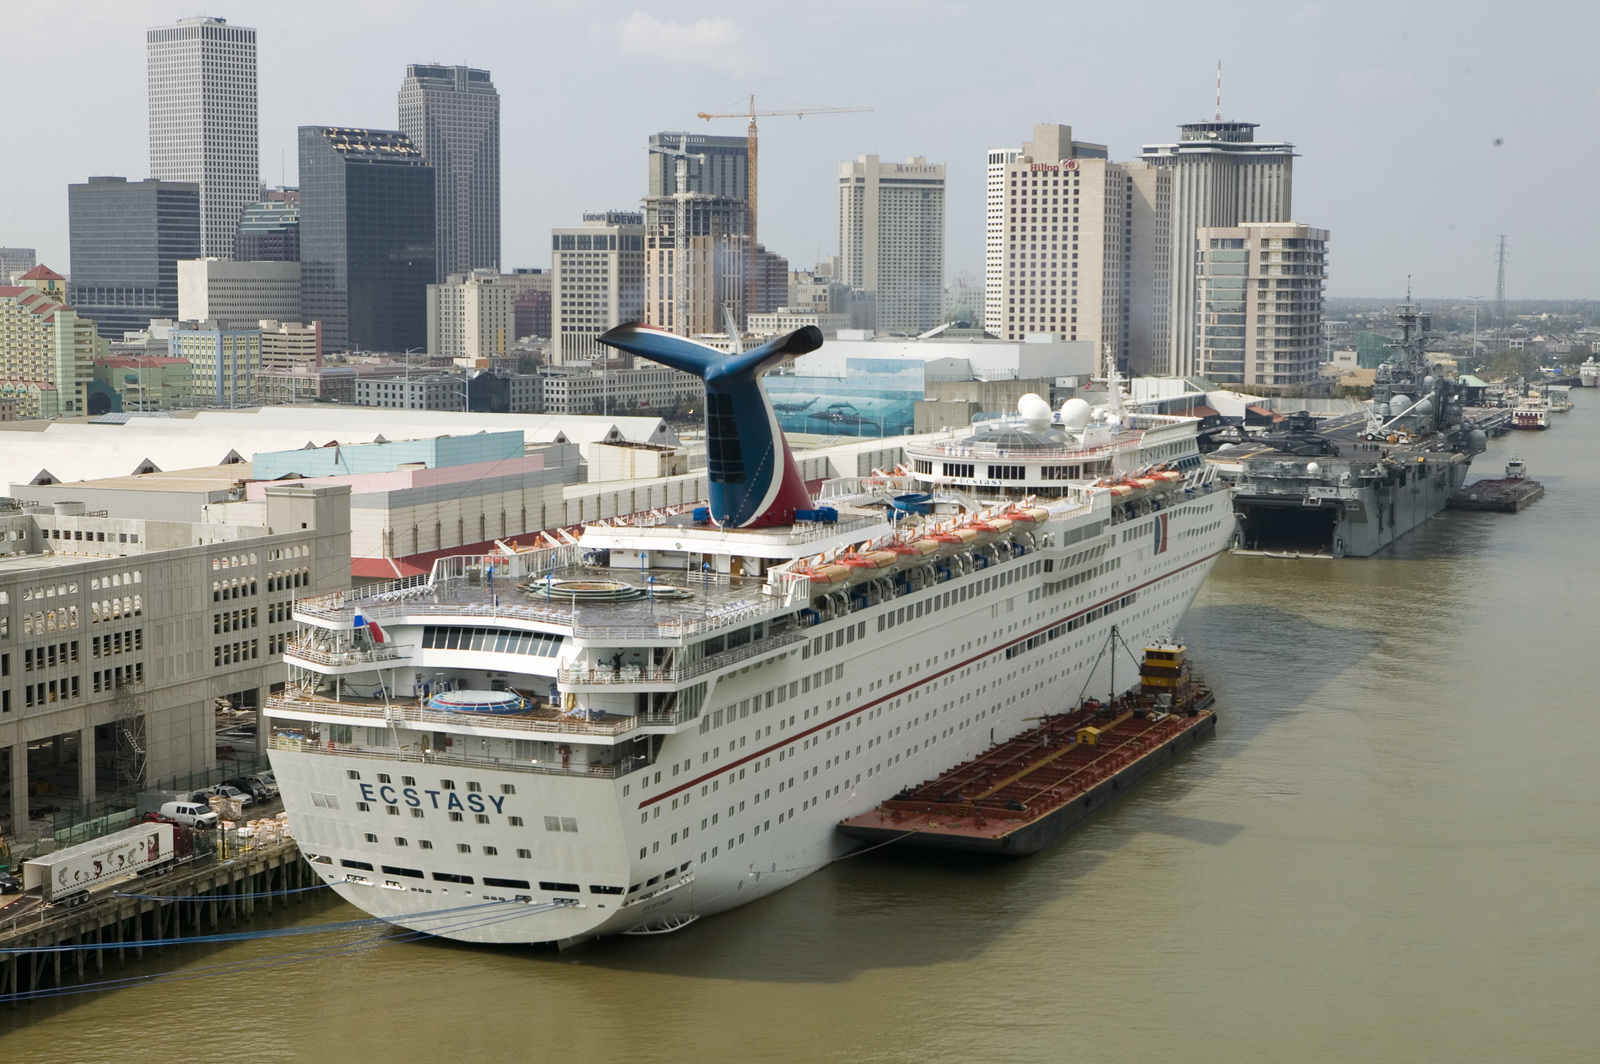 [Hurricane Katrina] New Orleans, LA., 9/18/2005 -- Cruise ship Ecstasy docked with the city of New Orleans in the background. Thousands of Hurricane Katrina survivors and response workers stayed on the Ecstasy due to the lack of housing in and around New Orleans.  FEMA photo/Andrea Booher